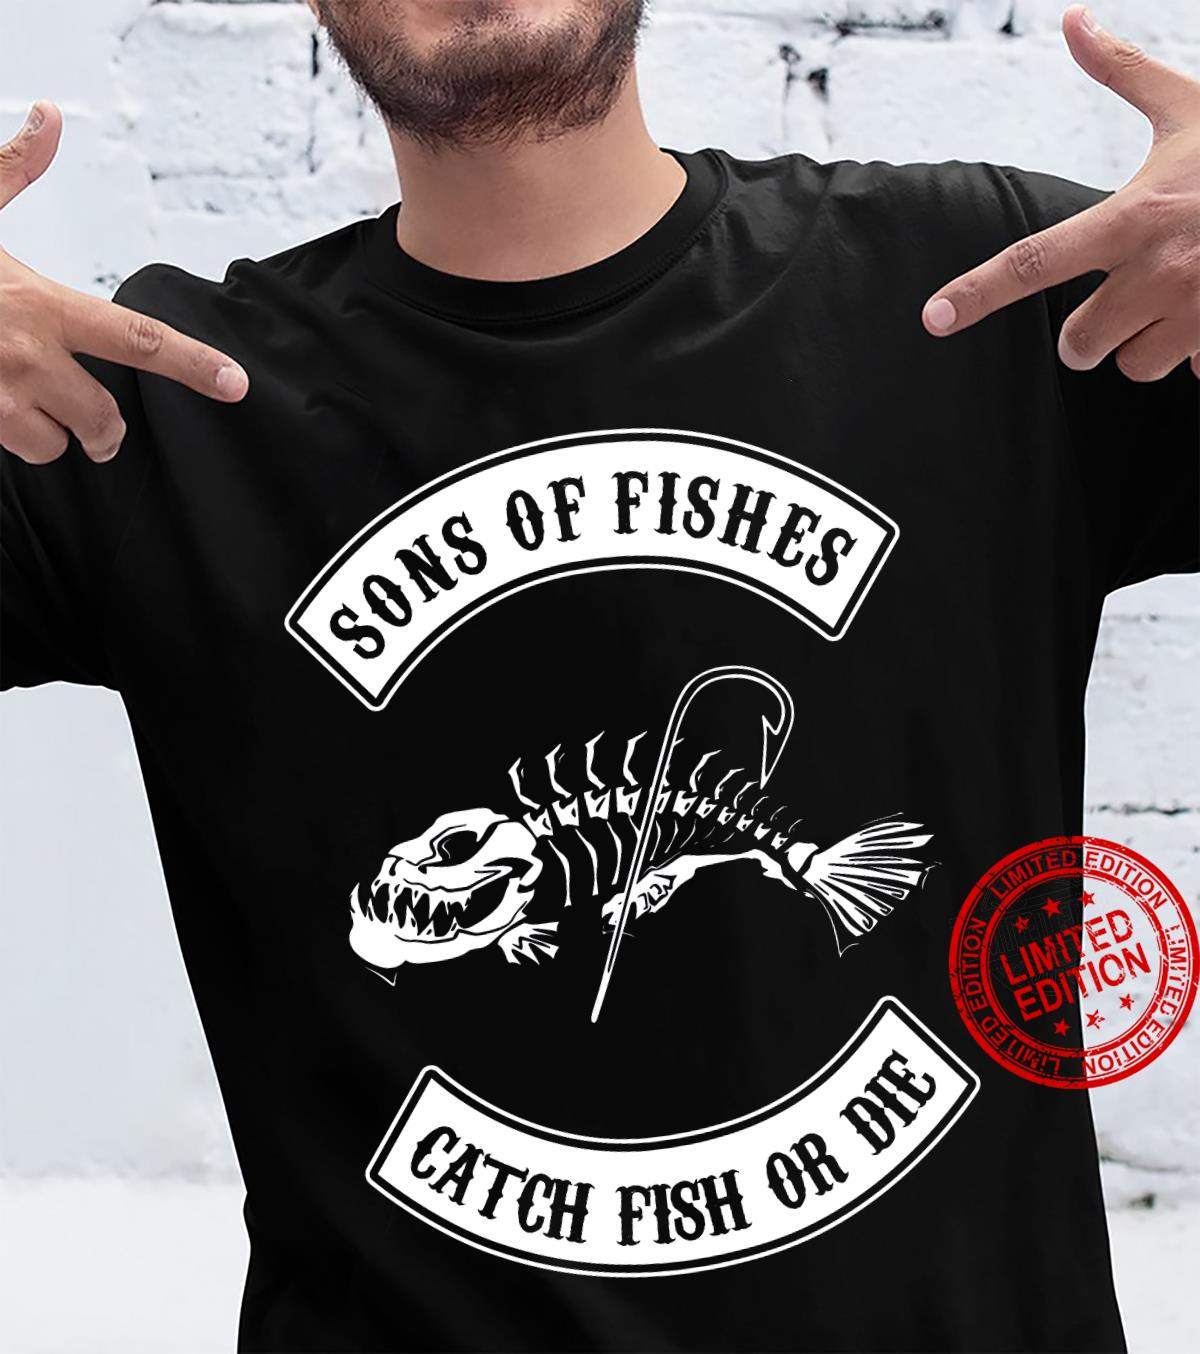 Sons Of Fishes Catch Fish Or Die Shirt unisex